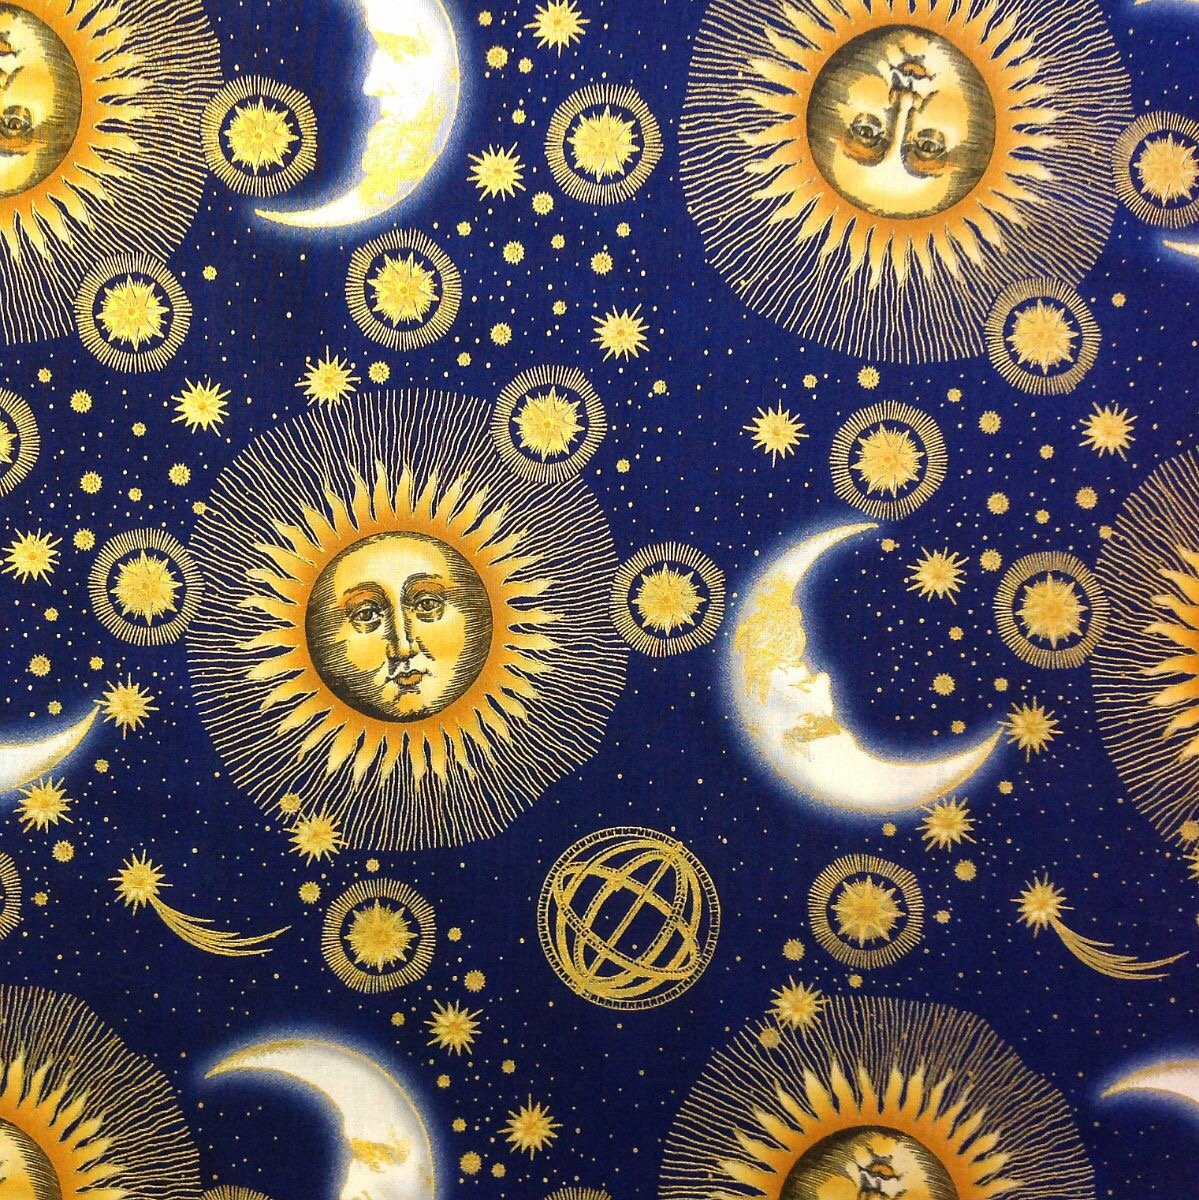 Stars Planet Zodiac Sun Moon Sky Constellation Cotton Quilt Fabric IB04